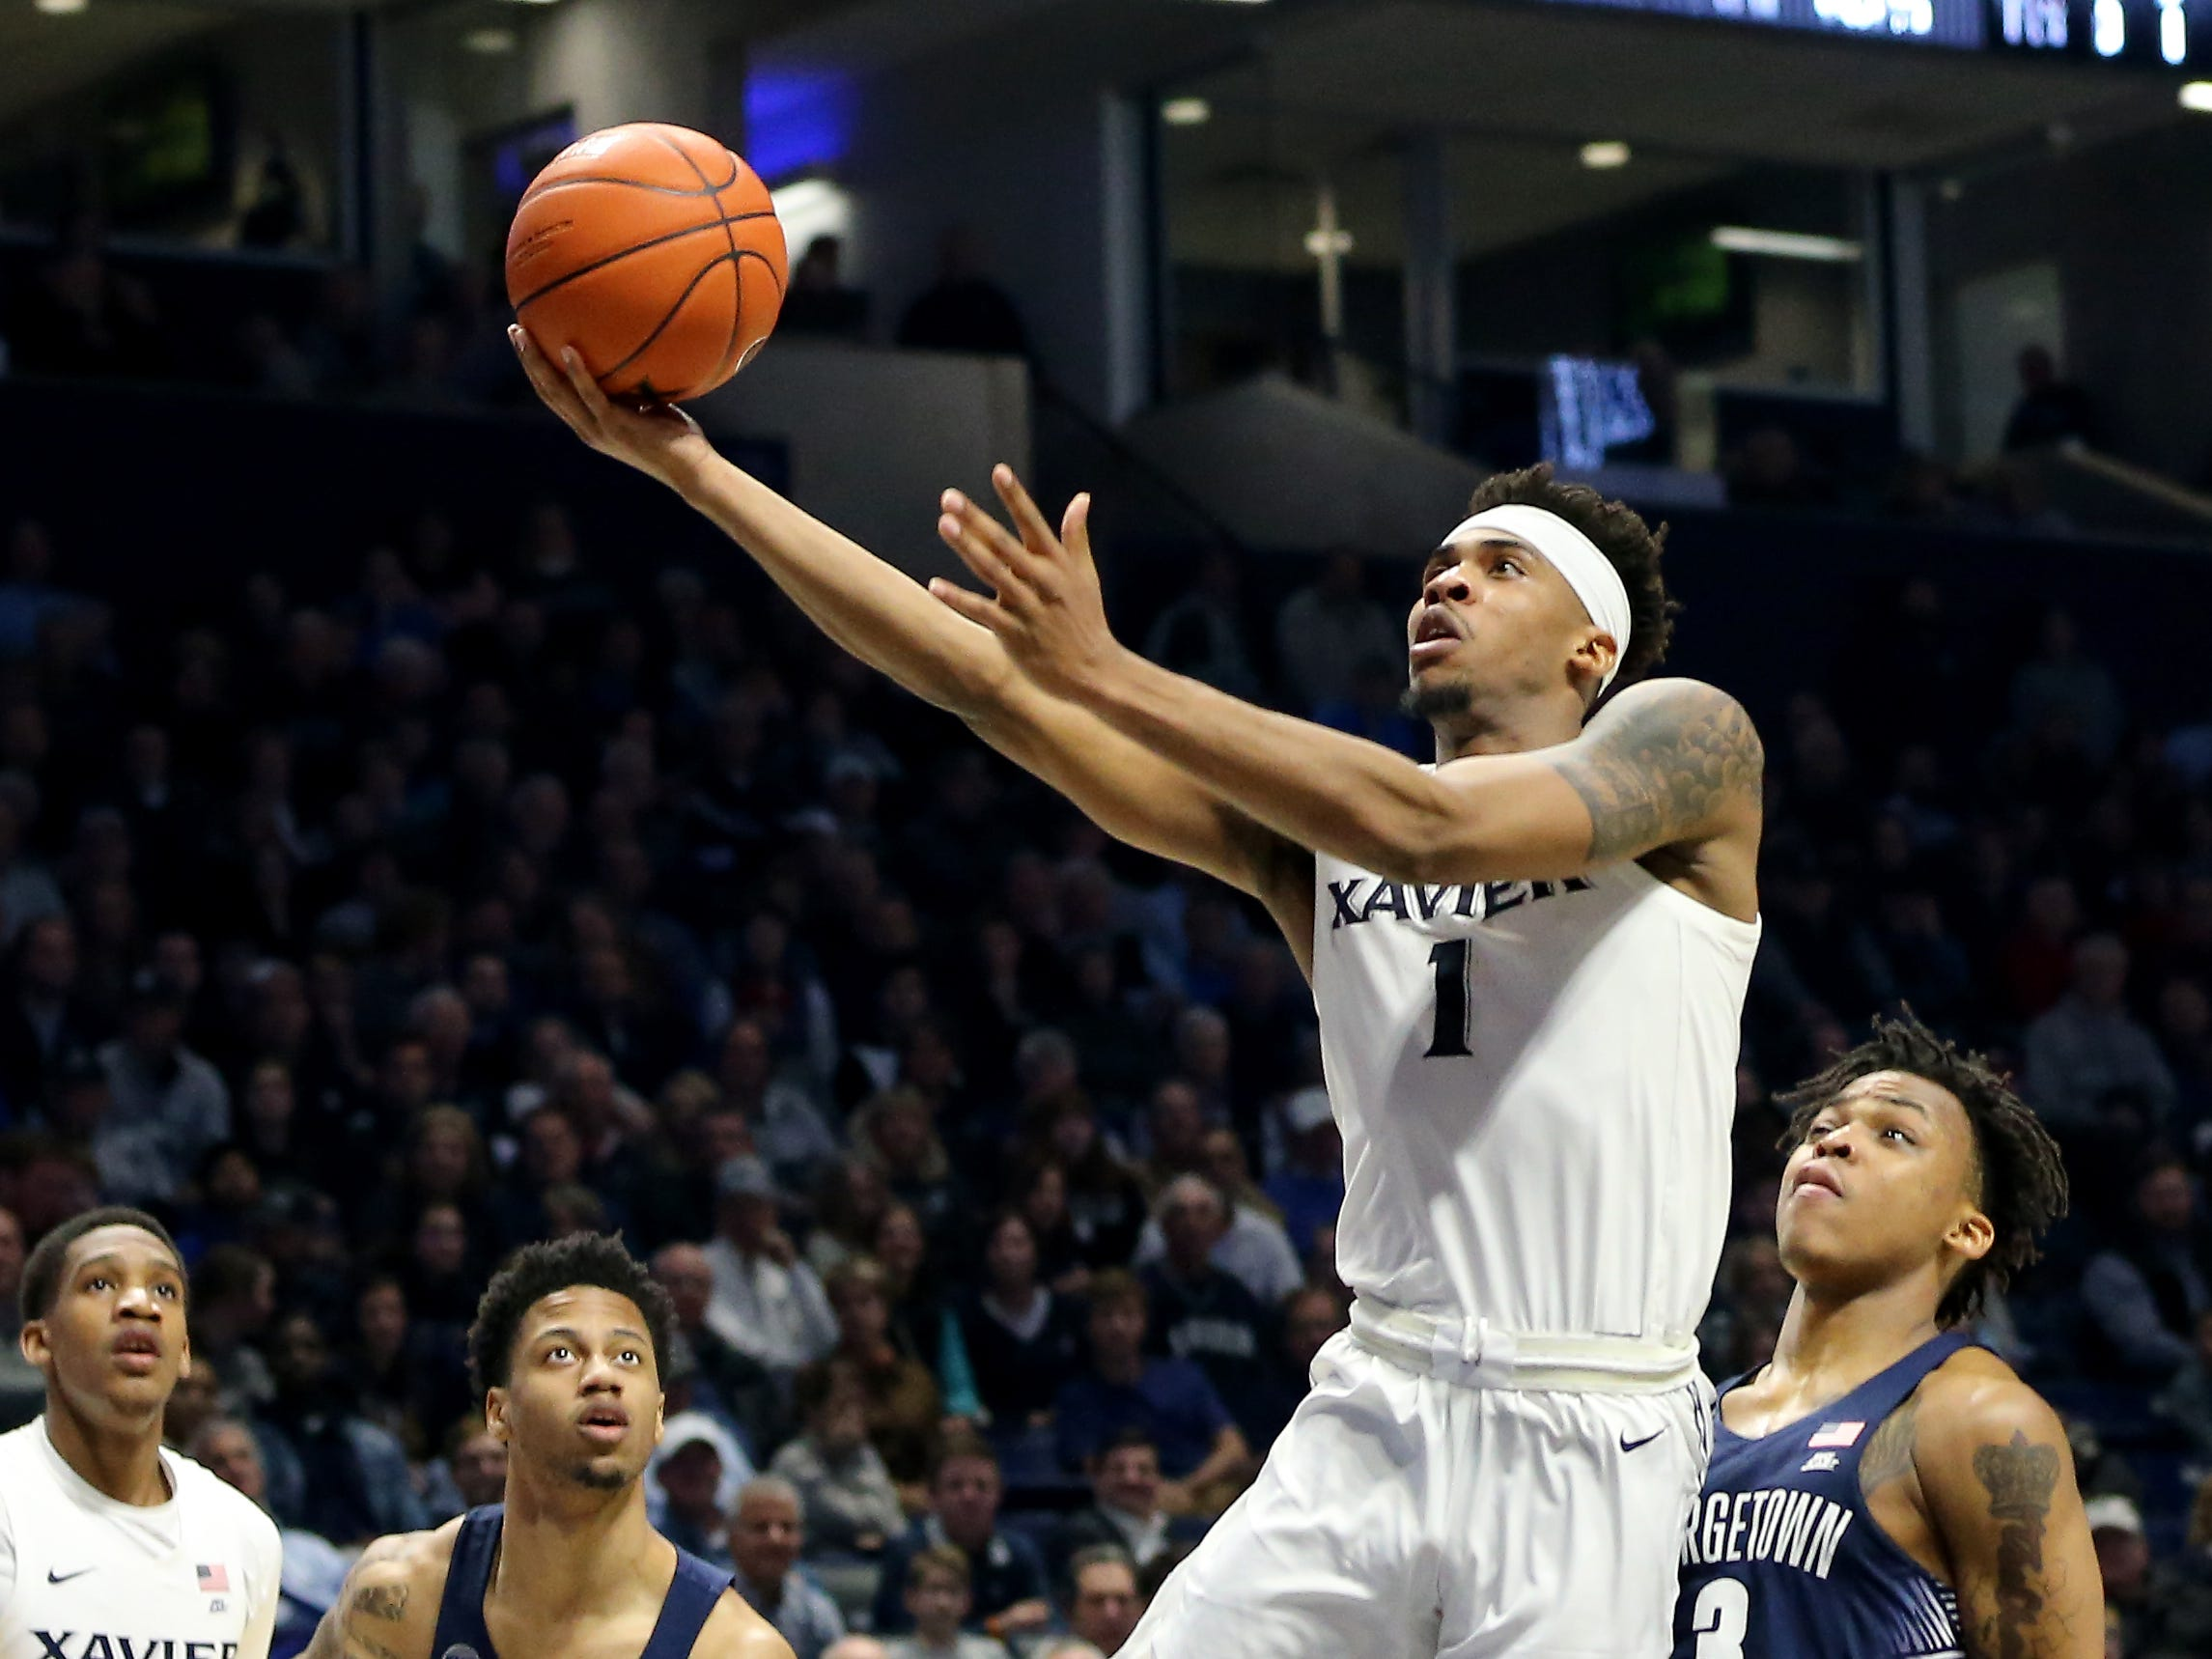 Xavier Musketeers guard Paul Scruggs (1) drives to the basket in the second half of an NCAA basketball game Georgetown Hoyas, Wednesday, Jan. 9, 2019, at the Cintas Center in Cincinnati. Xavier Musketeers won 81-75 against the Georgetown Hoyas.